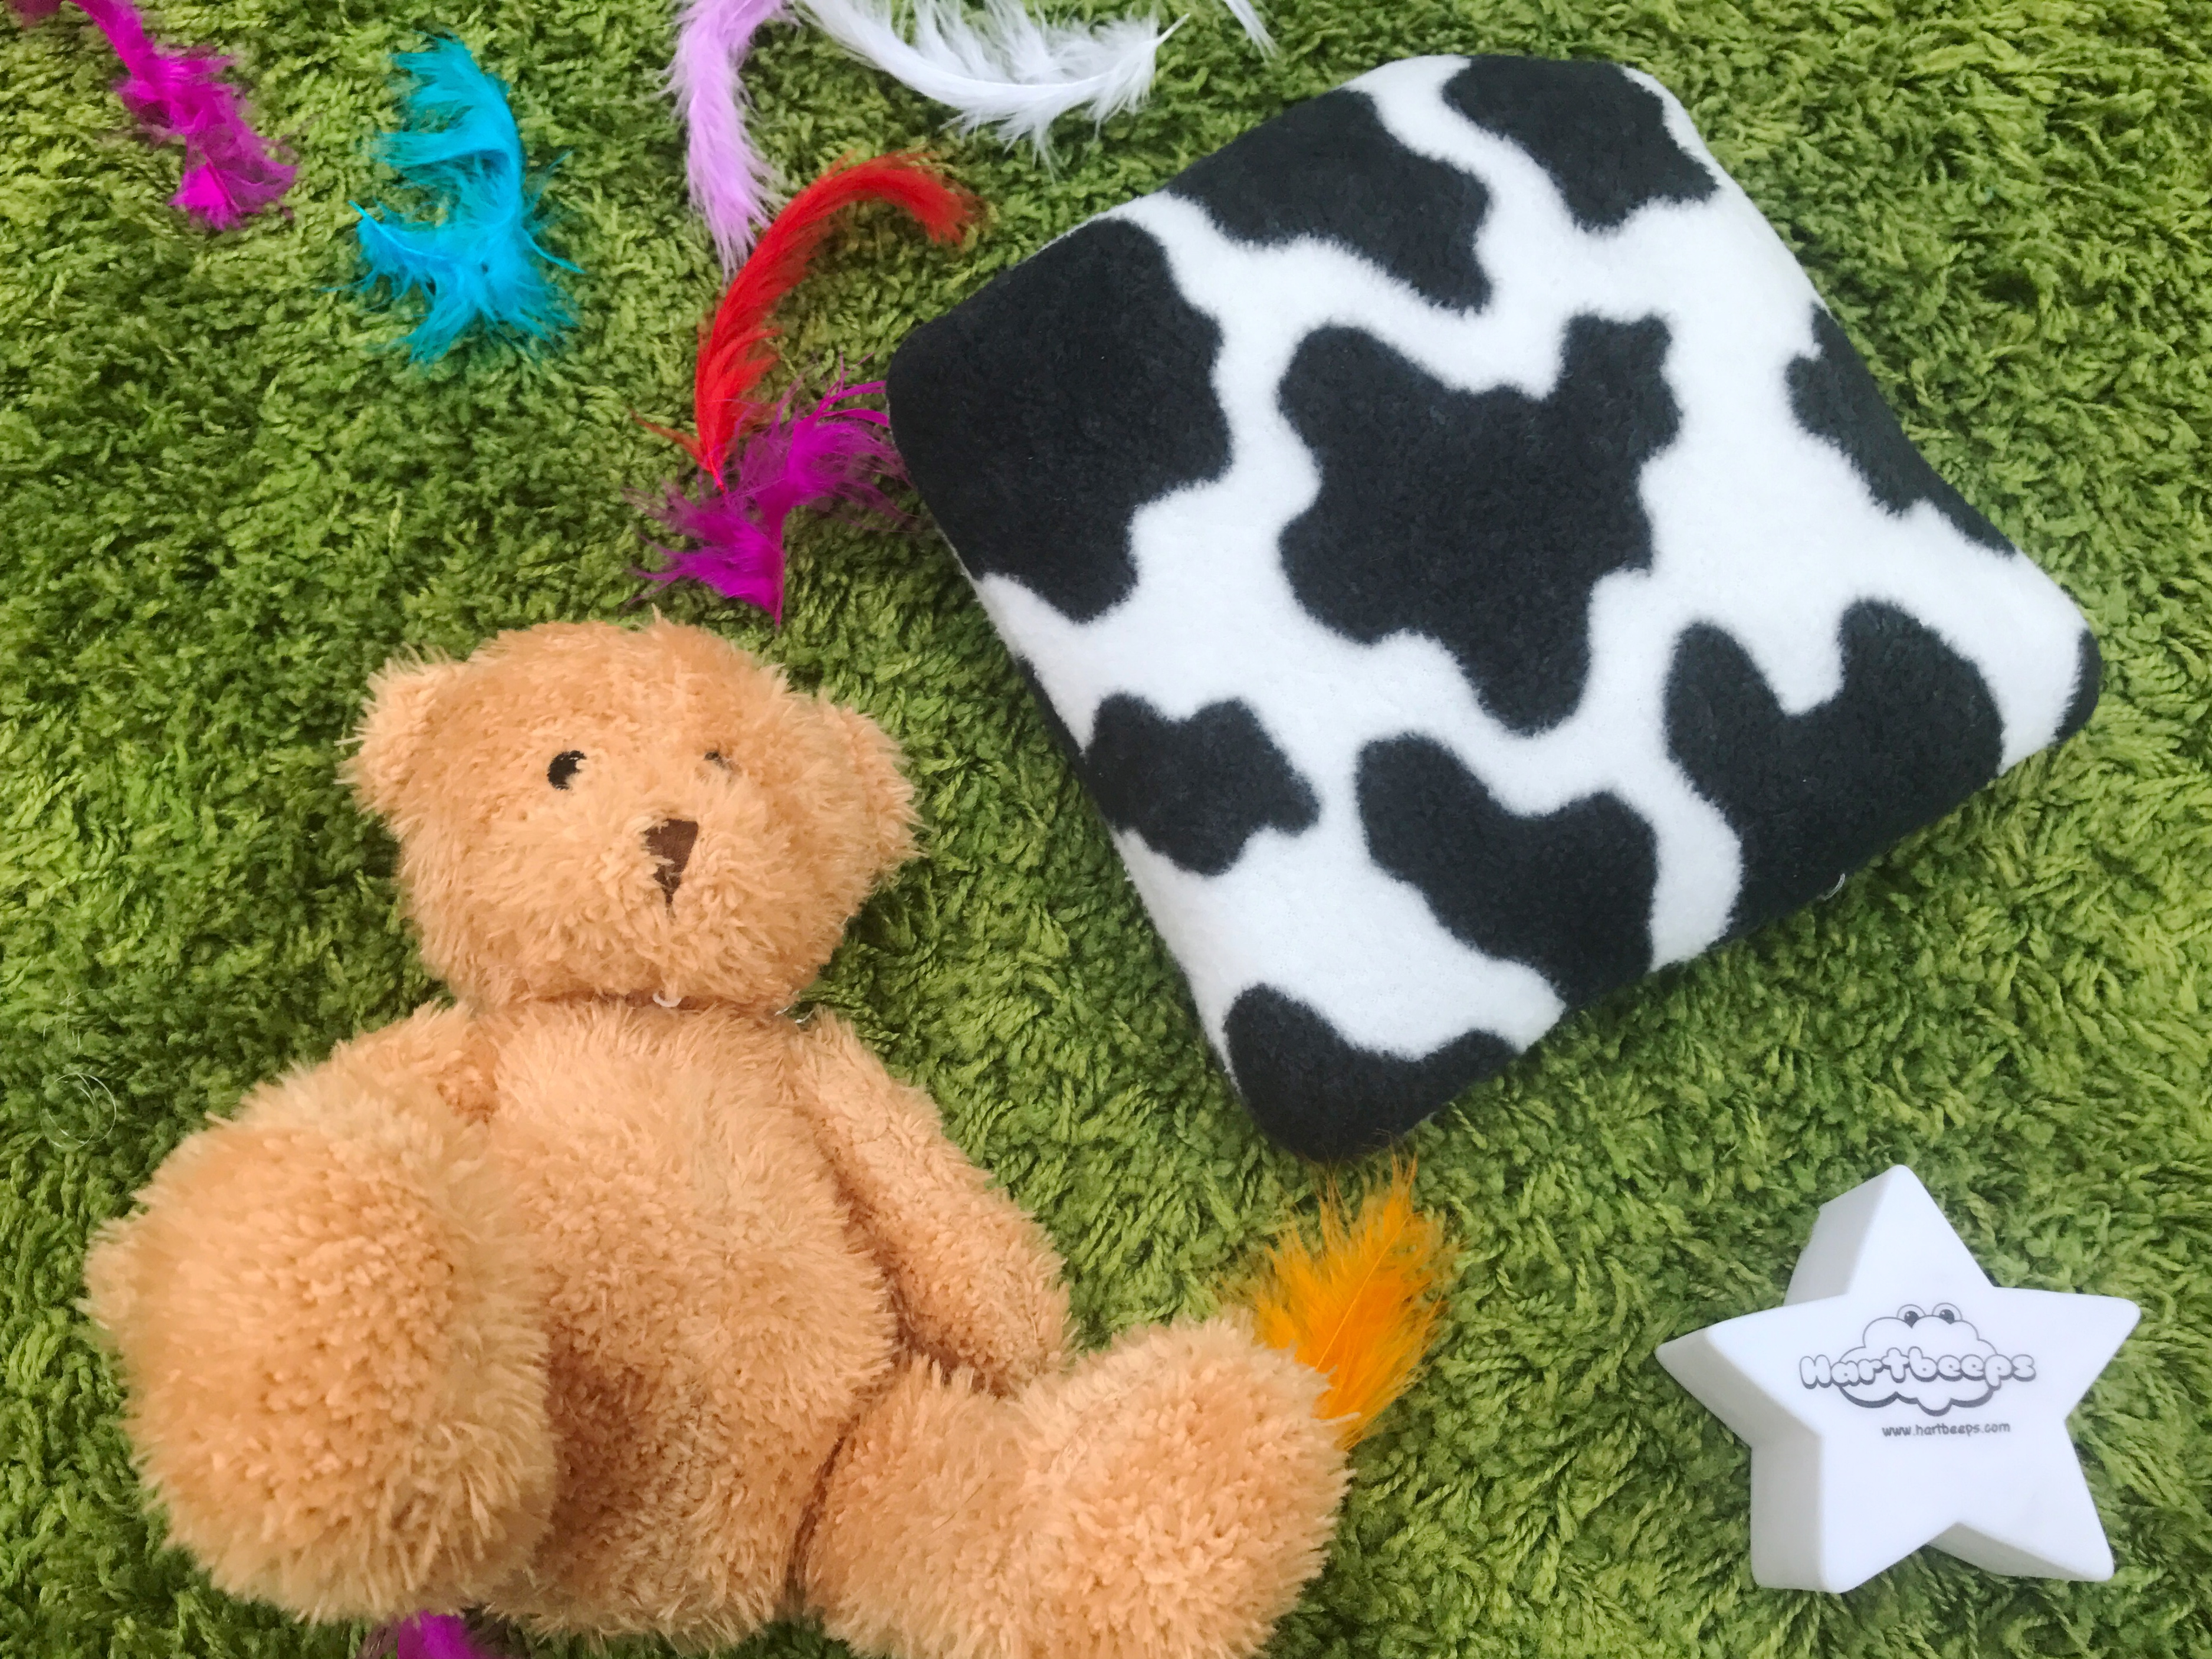 Hartbeeps star light and teddy bear